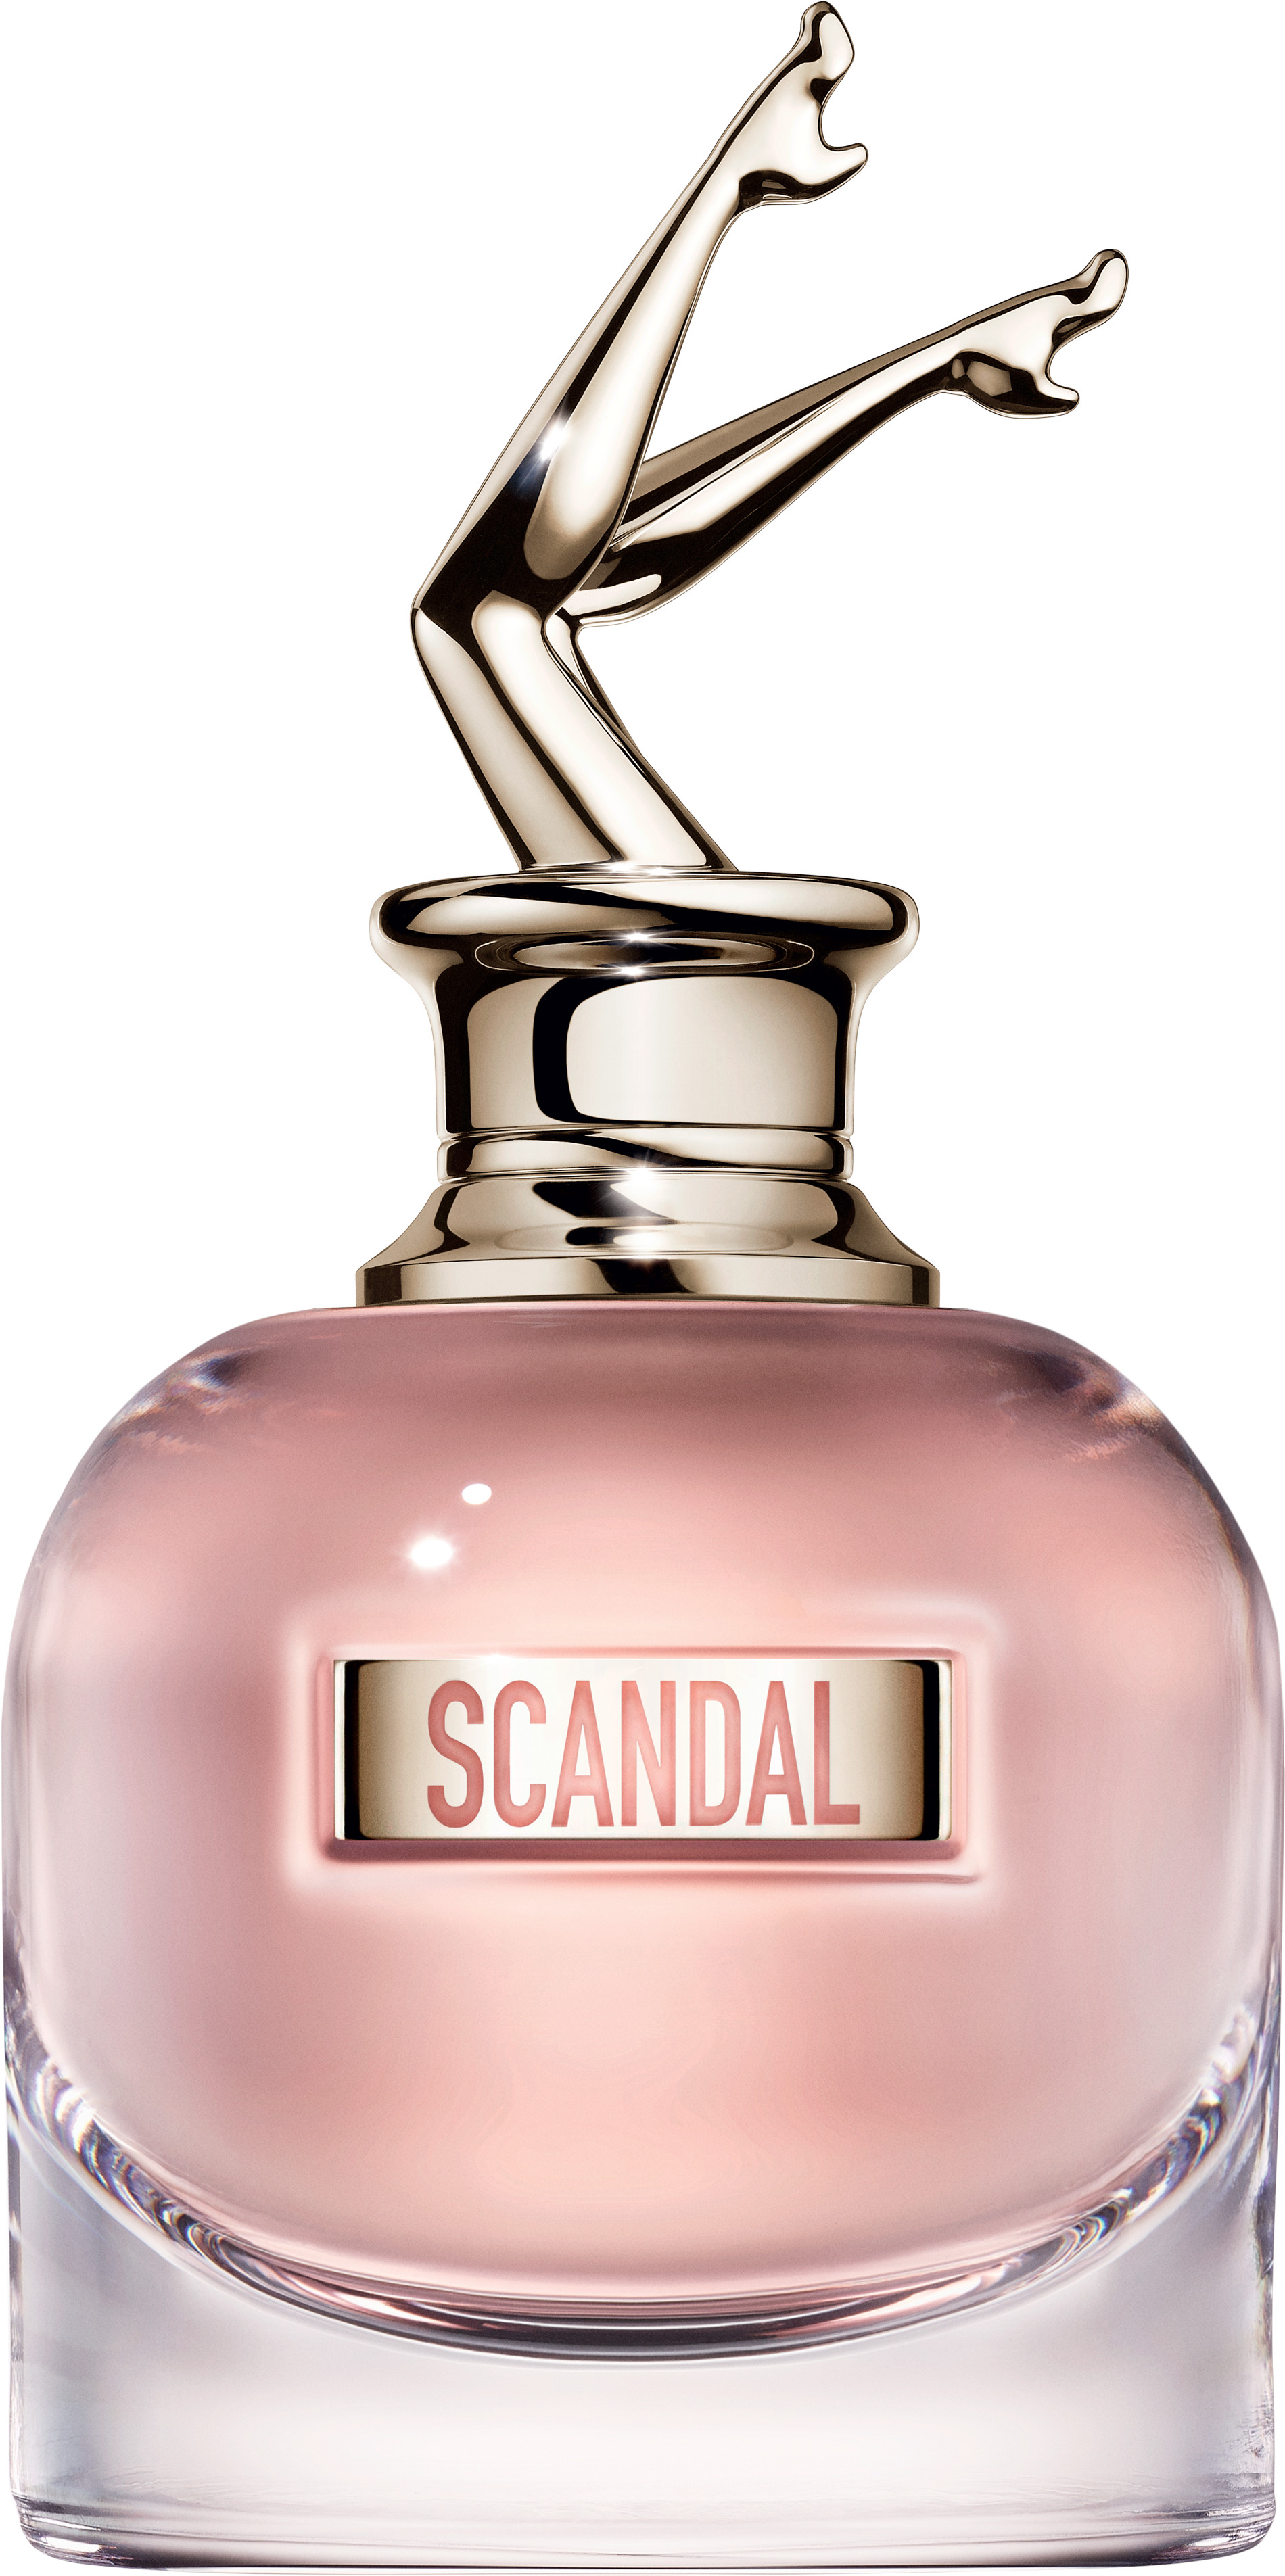 jean-paul-gaultier-scandal-eau-de-parfum-spray-80ml